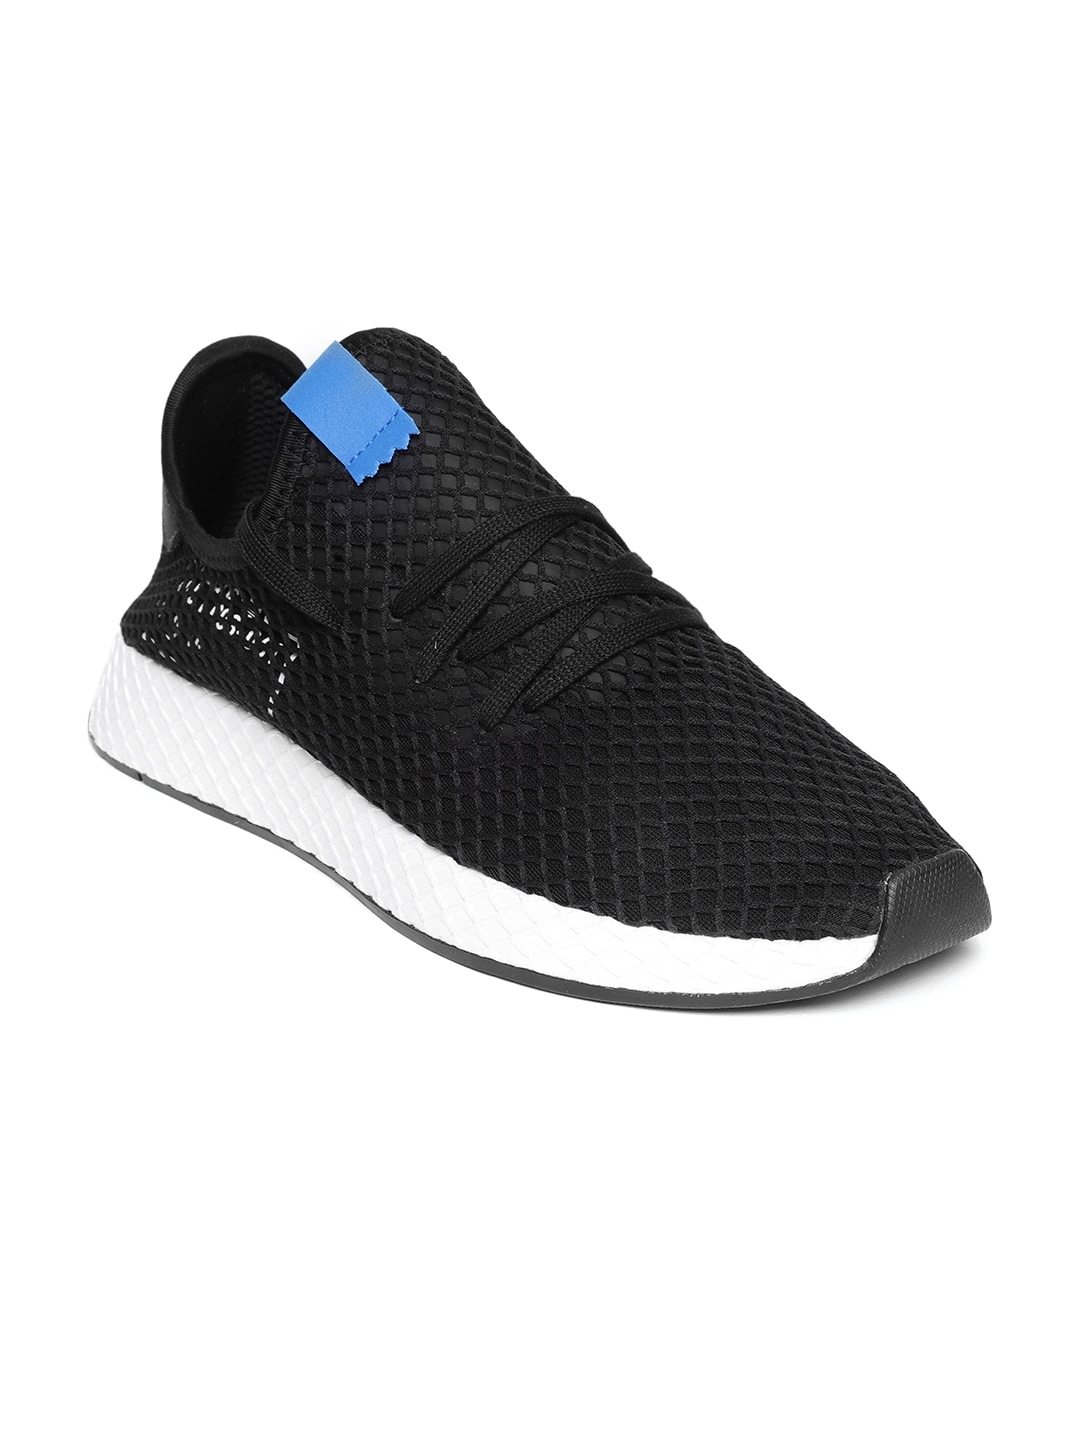 32d4e05c25a72 Adidas Shoes - Buy Adidas Shoes for Men   Women Online - Myntra